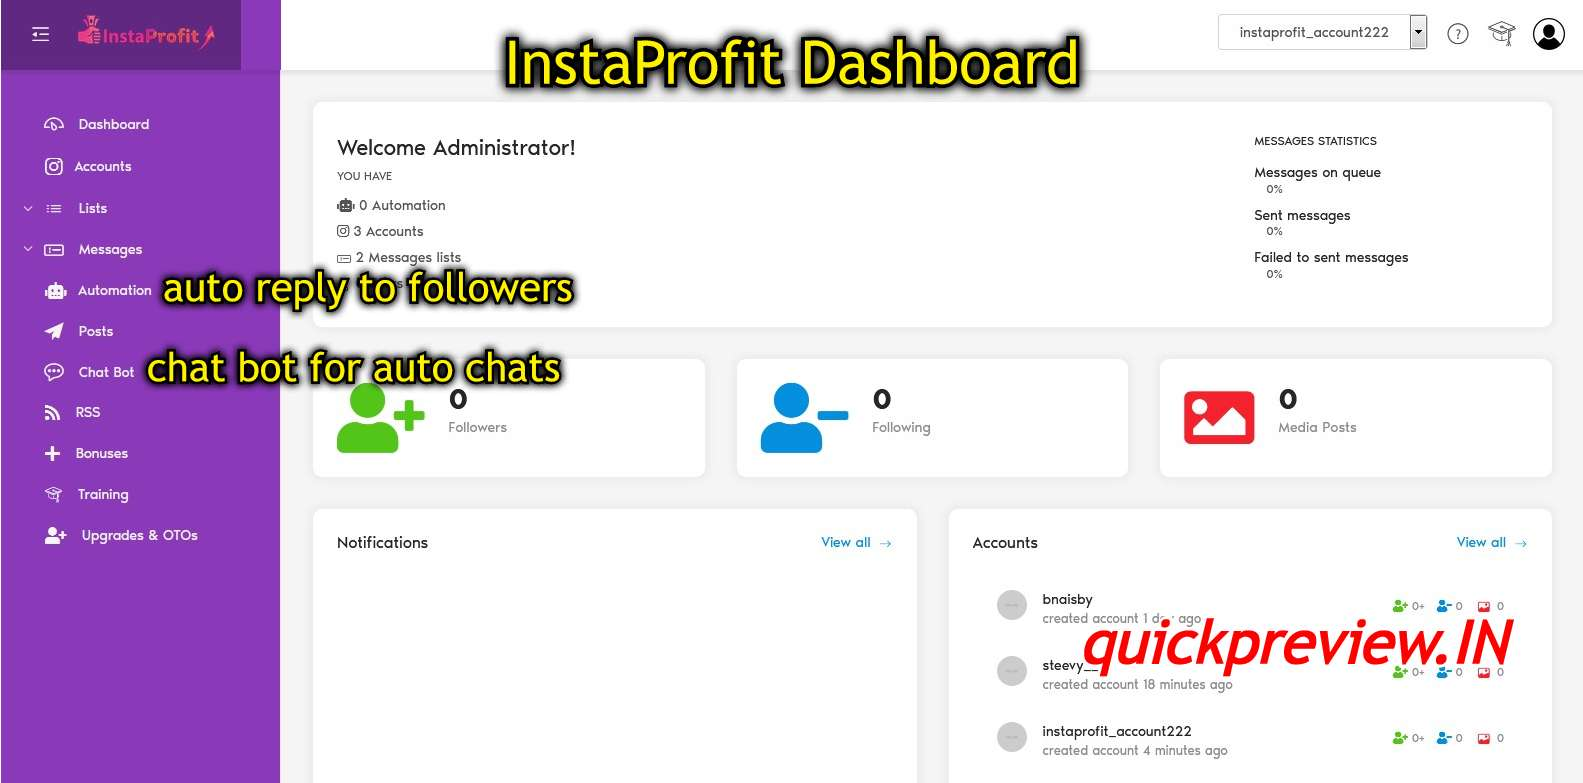 instaprofit dashboard